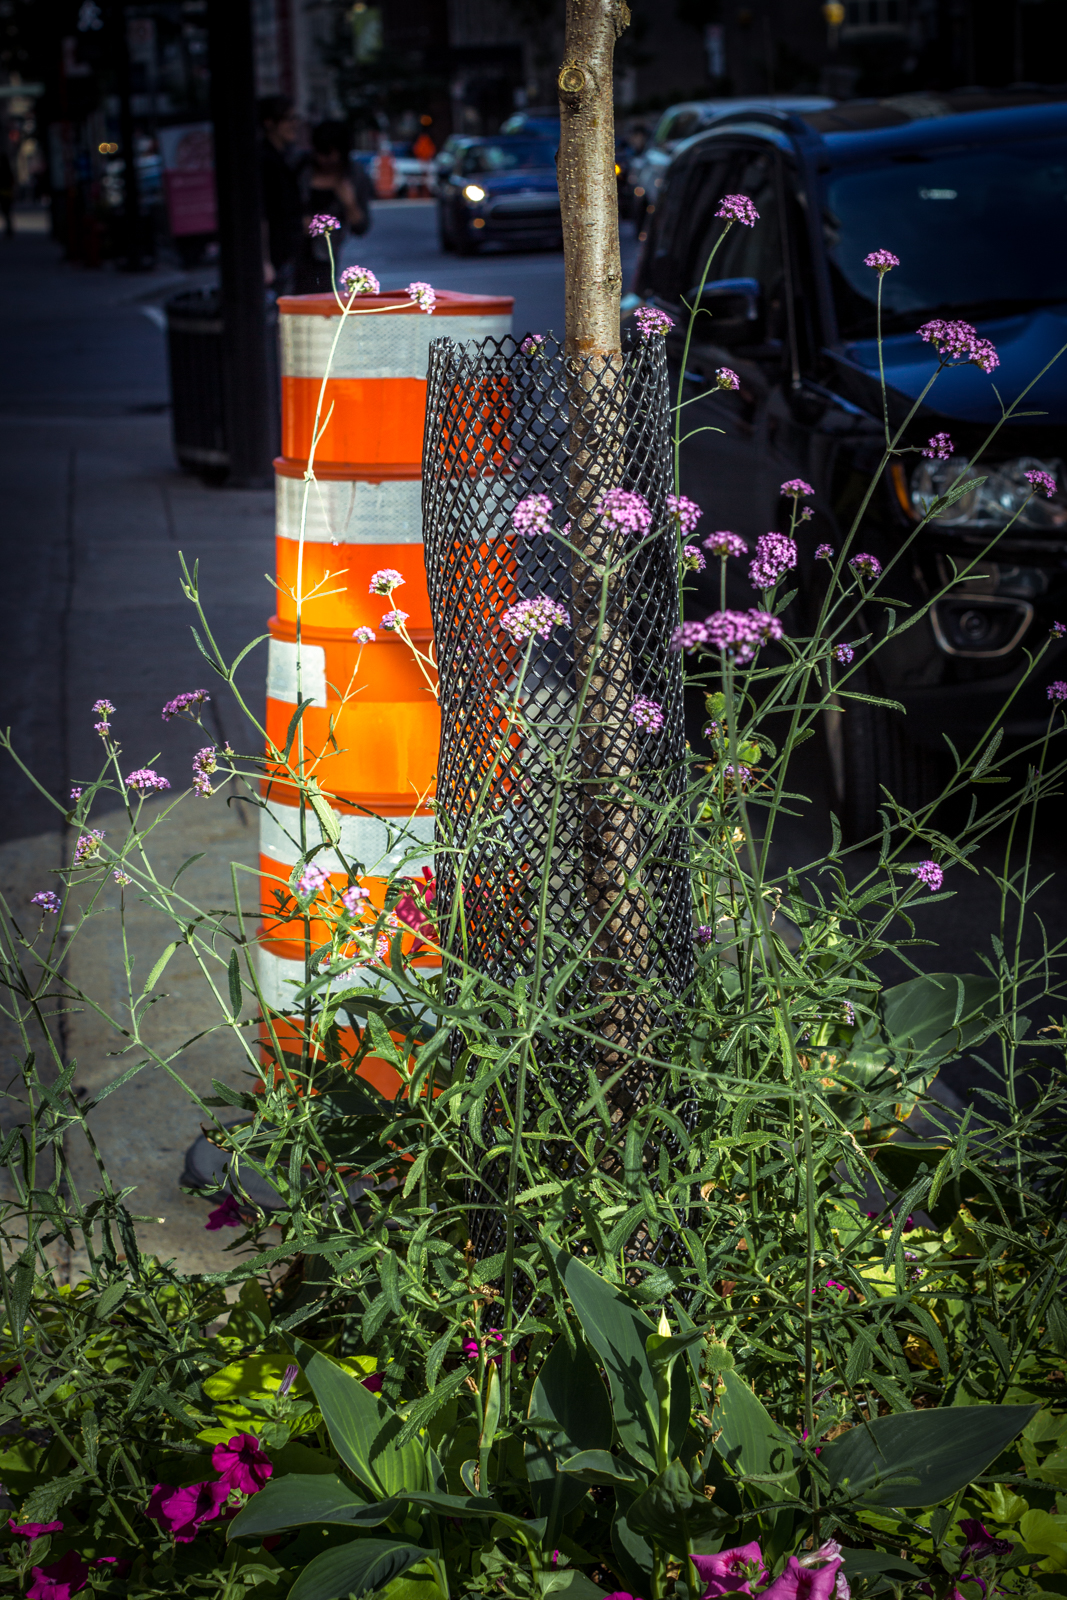 Beauty and the beast. The city is filled with beautiful flowers, but unfortunately, the constant construction seems to spoil these efforts all too many times.